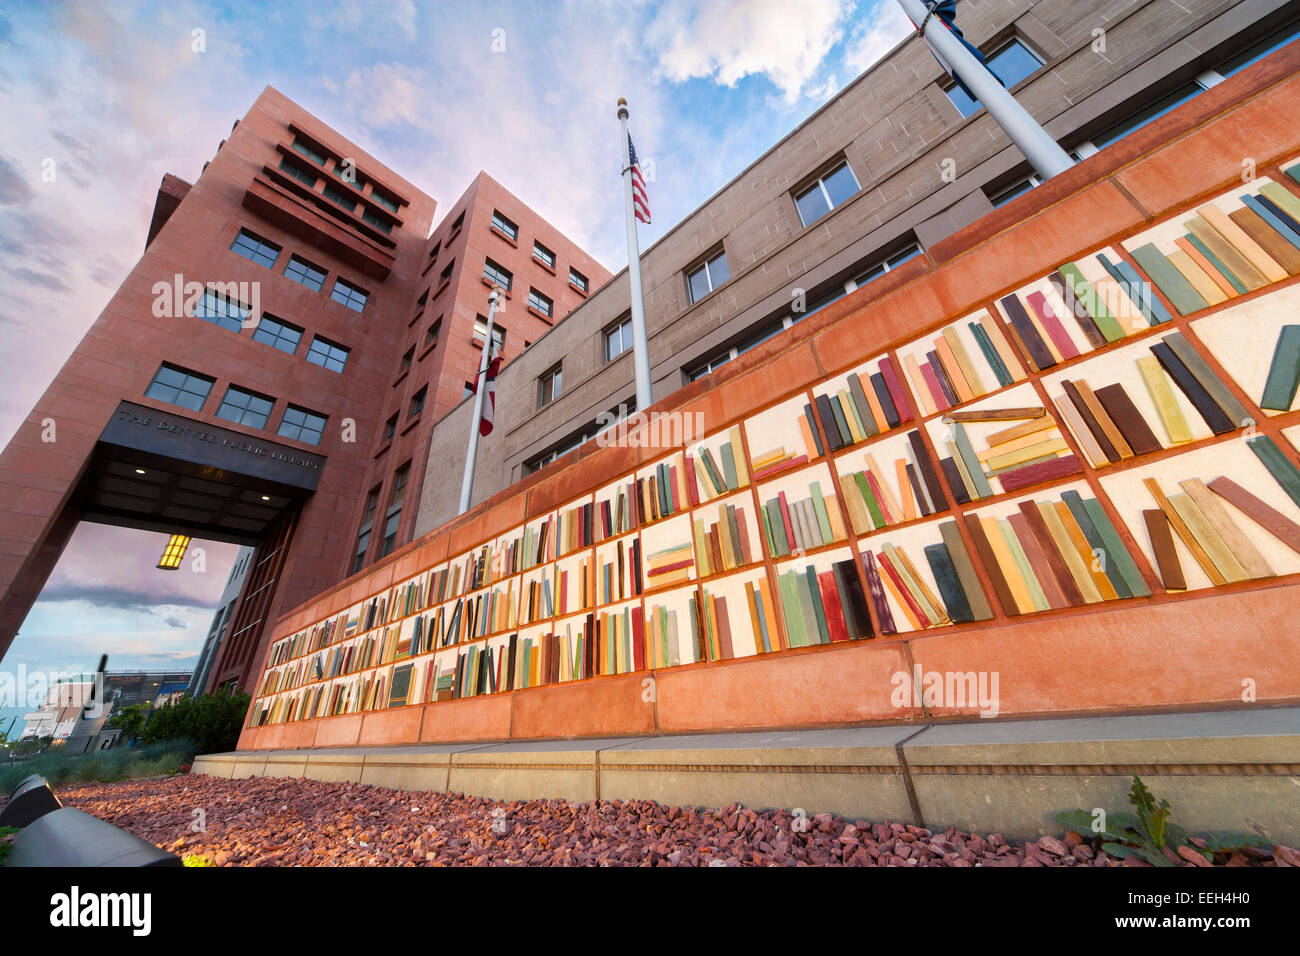 denver-public-library-exterior-with-ceramic-book-art-sculpture-EEH4H0.jpg